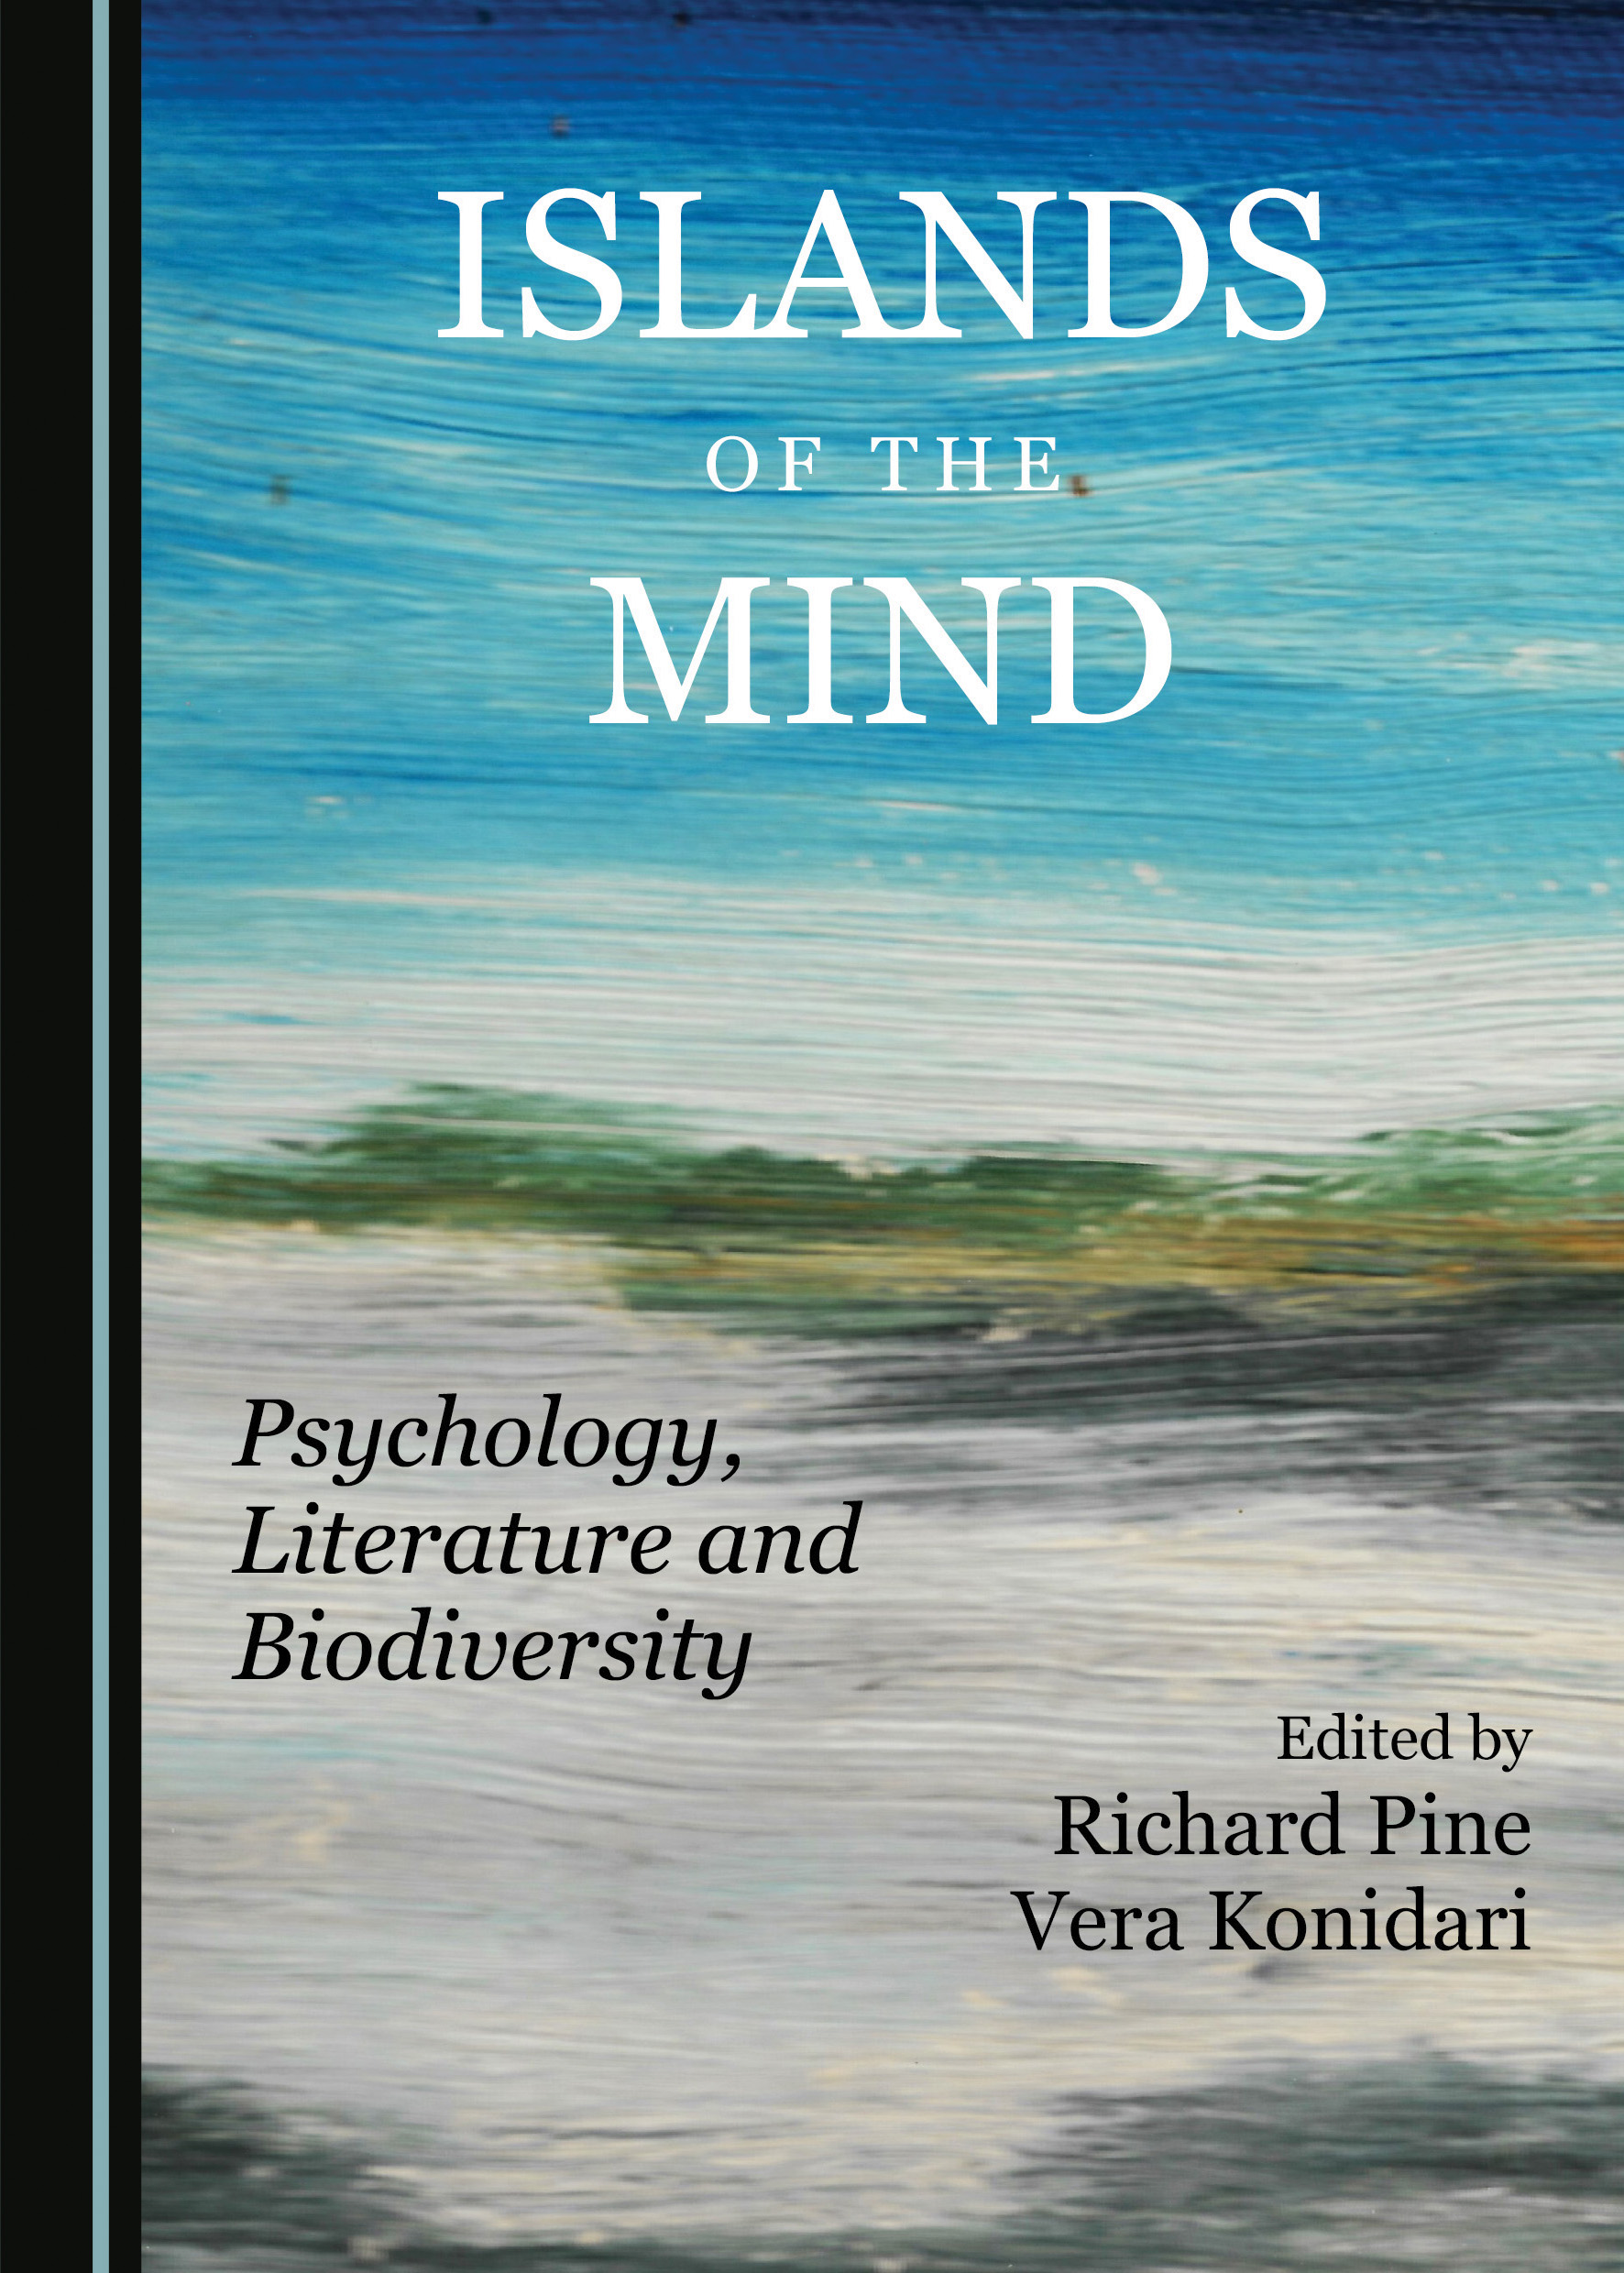 Islands of the Mind: Psychology, Literature and Biodiversity